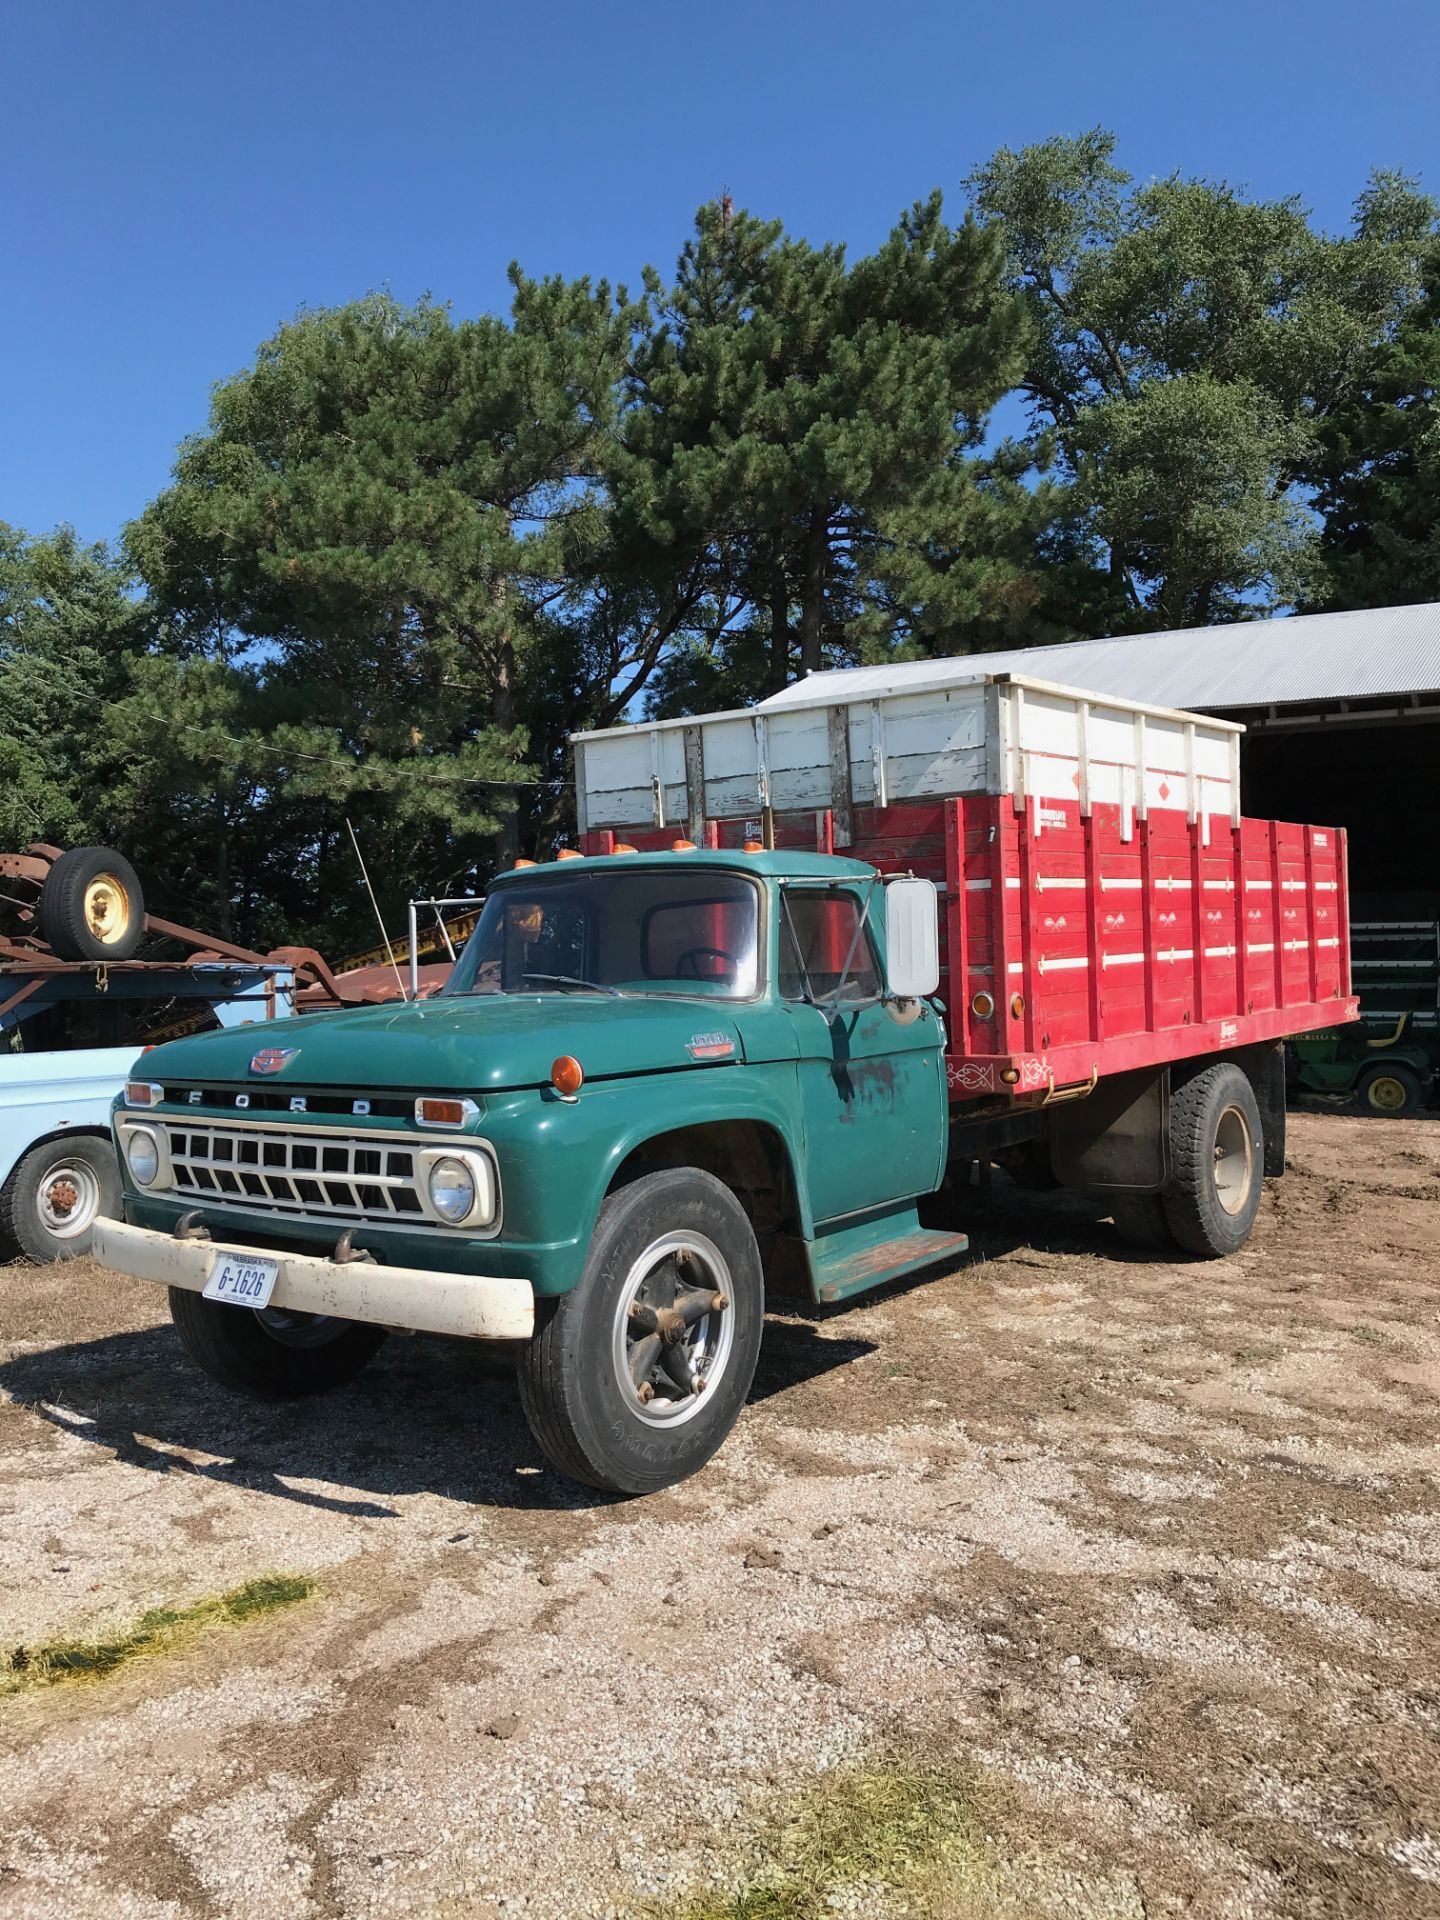 Lot 2A - 1965 Ford F-600 Grain Truck, 390 V-8, 5/2spd, 16' Wood Box w/Hoist (clean)